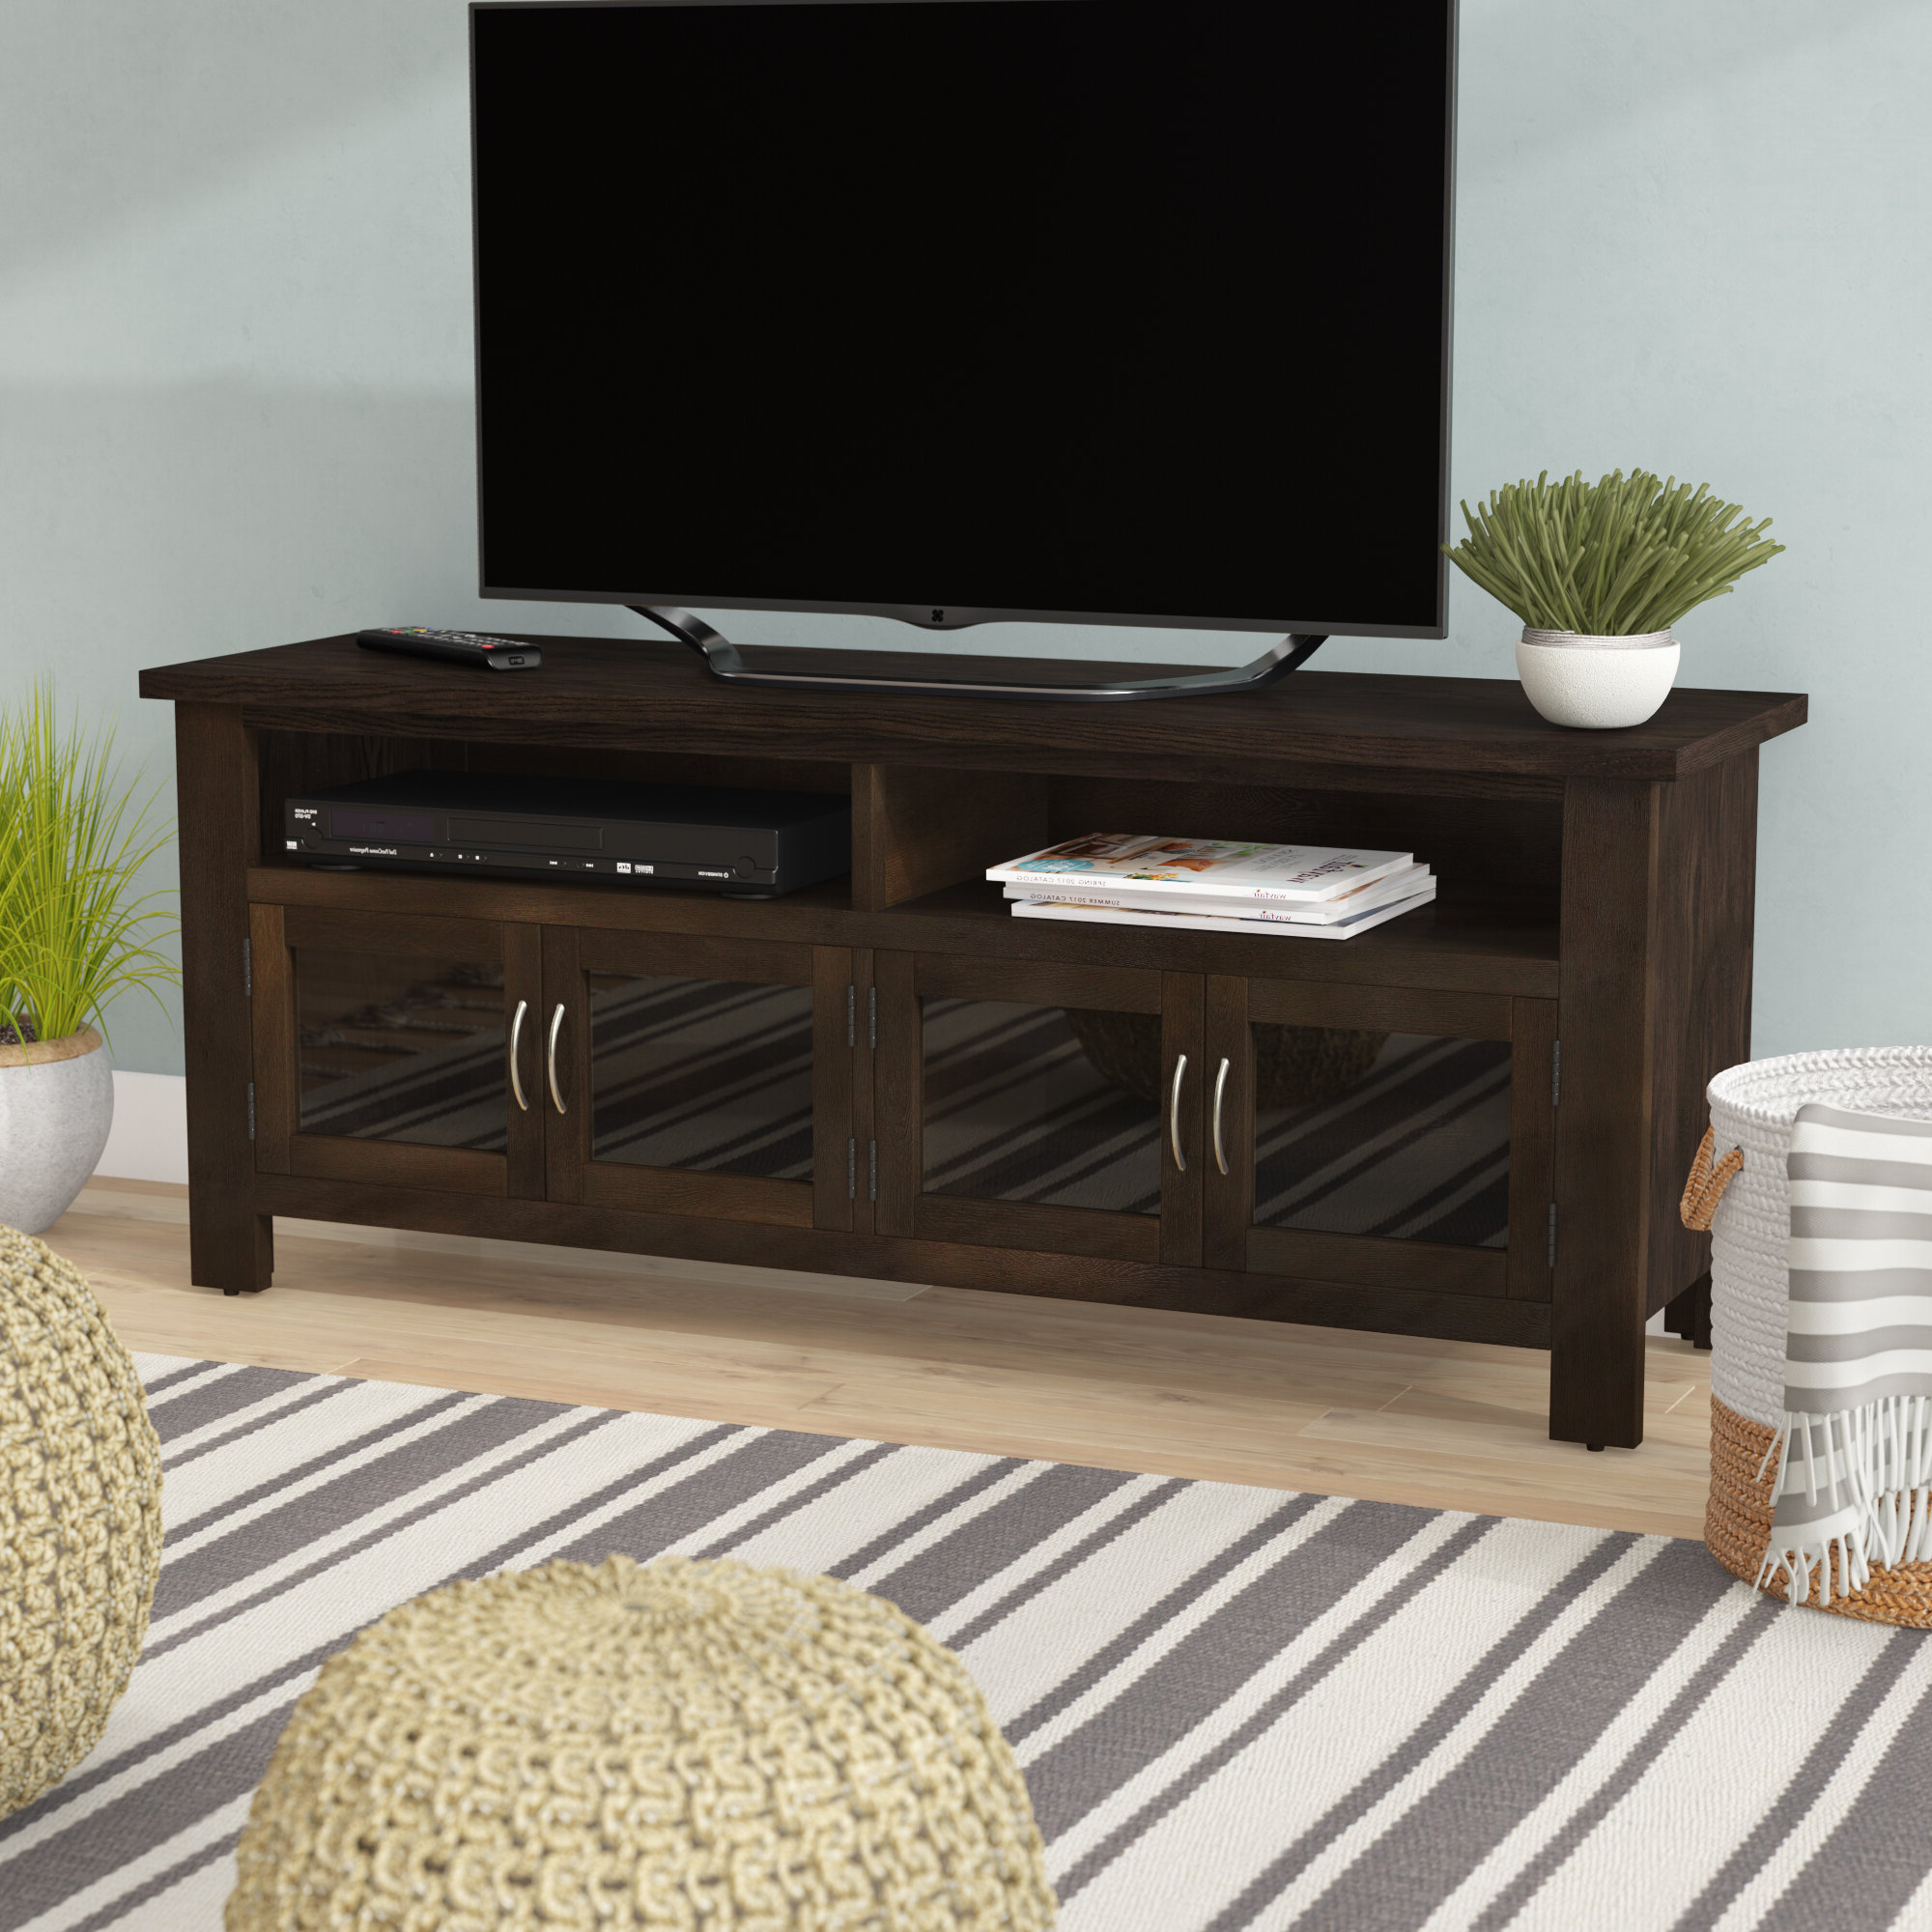 "Capirano Tv Stand For Tvs Up To 60"" Inside Ericka Tv Stands For Tvs Up To 42"" (View 3 of 20)"